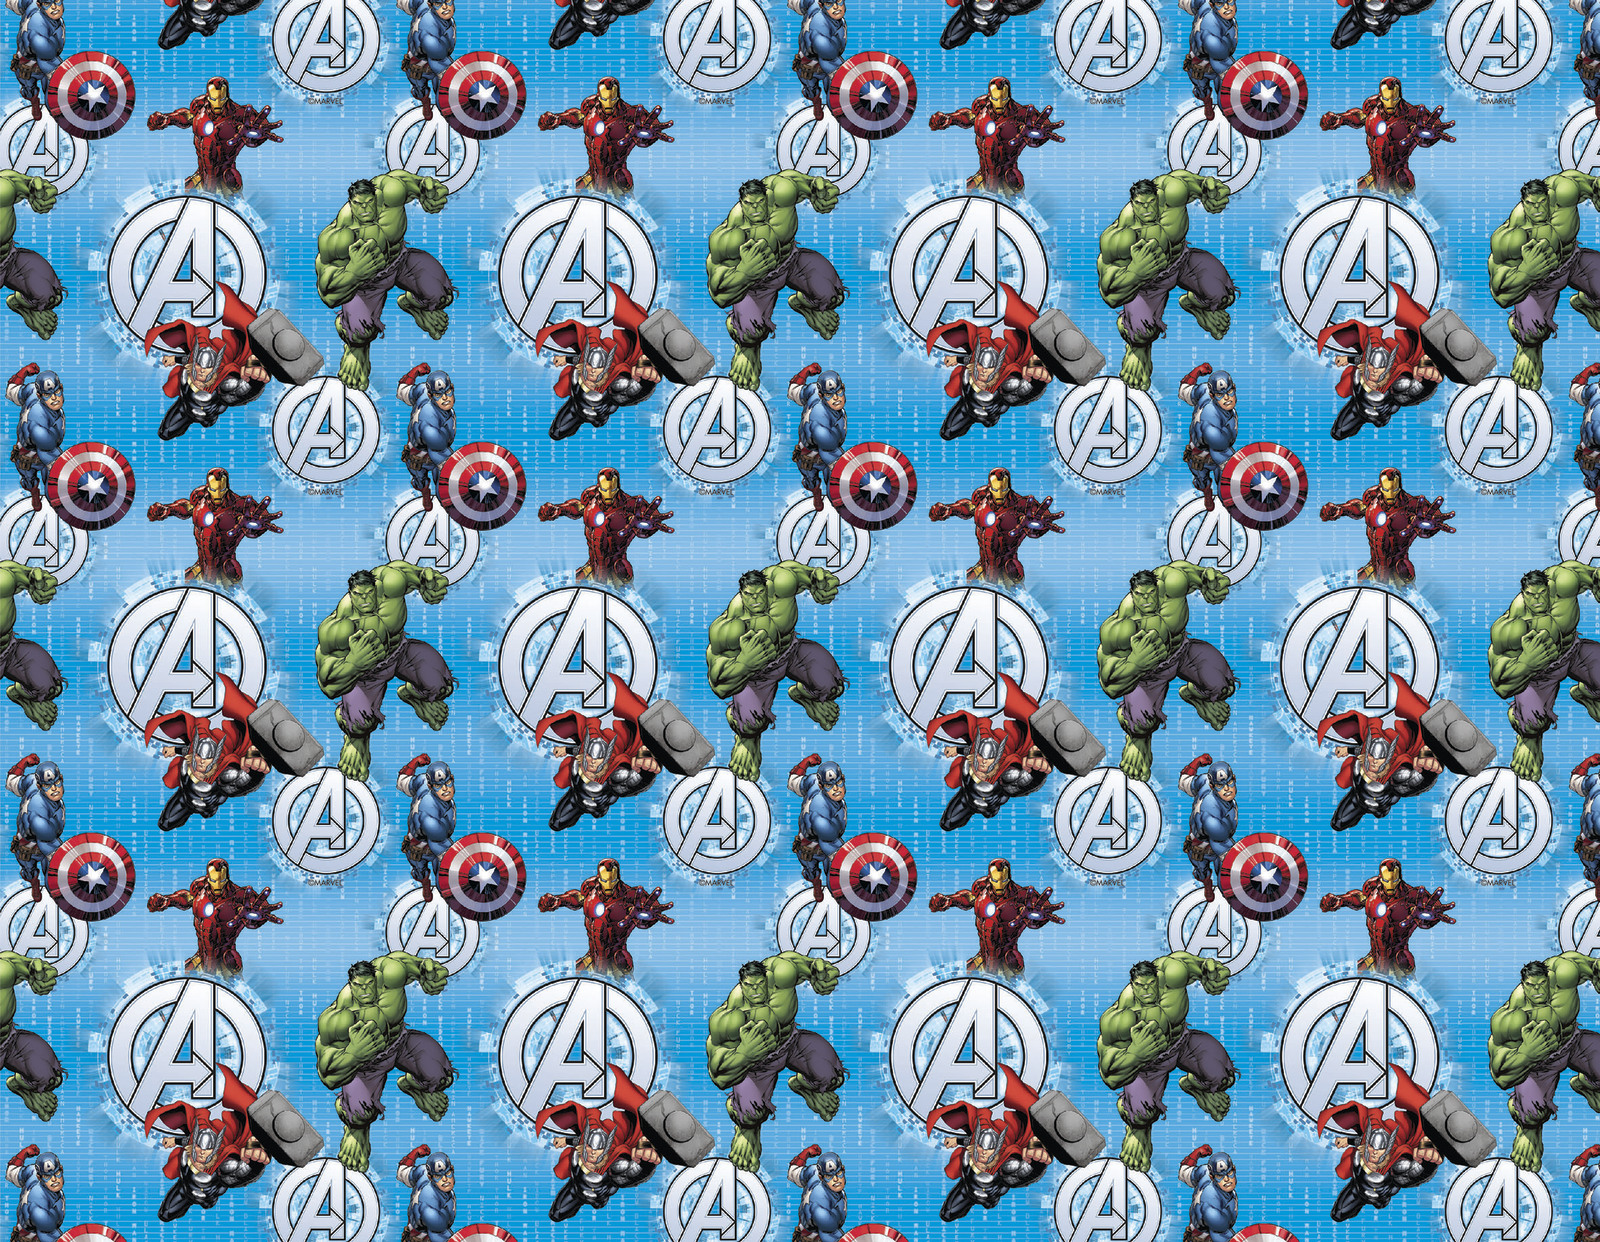 Marvel Avengers Book Covering (1m) image